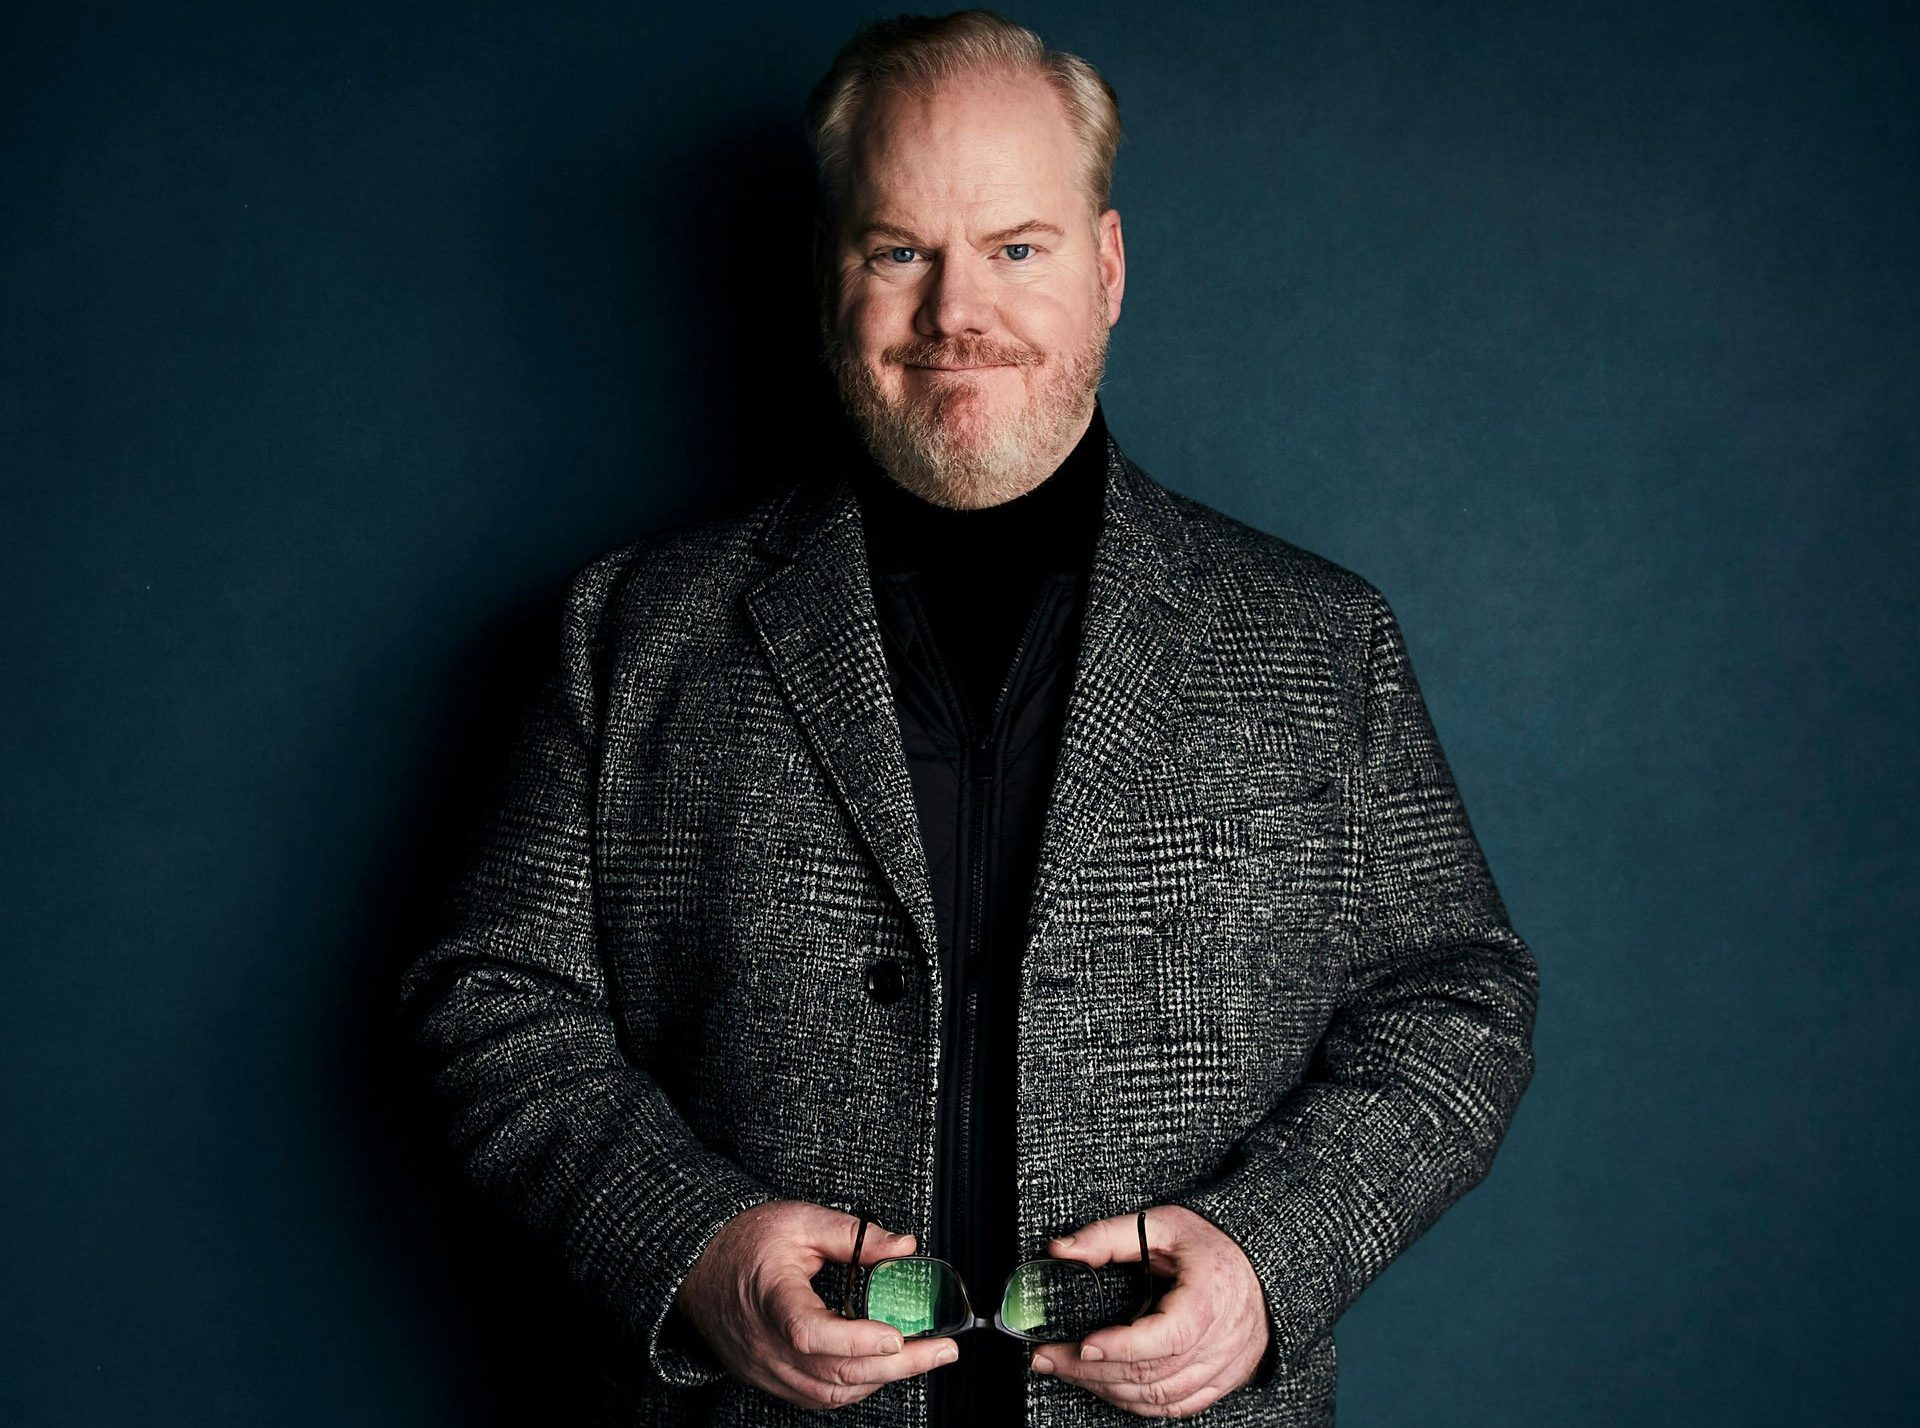 Comedian Jim Gaffigan wearing a plaid coat and black turtle neck poses in front of a dark blue background for a photo. Tickets available for August 2021 Las Vegas show.